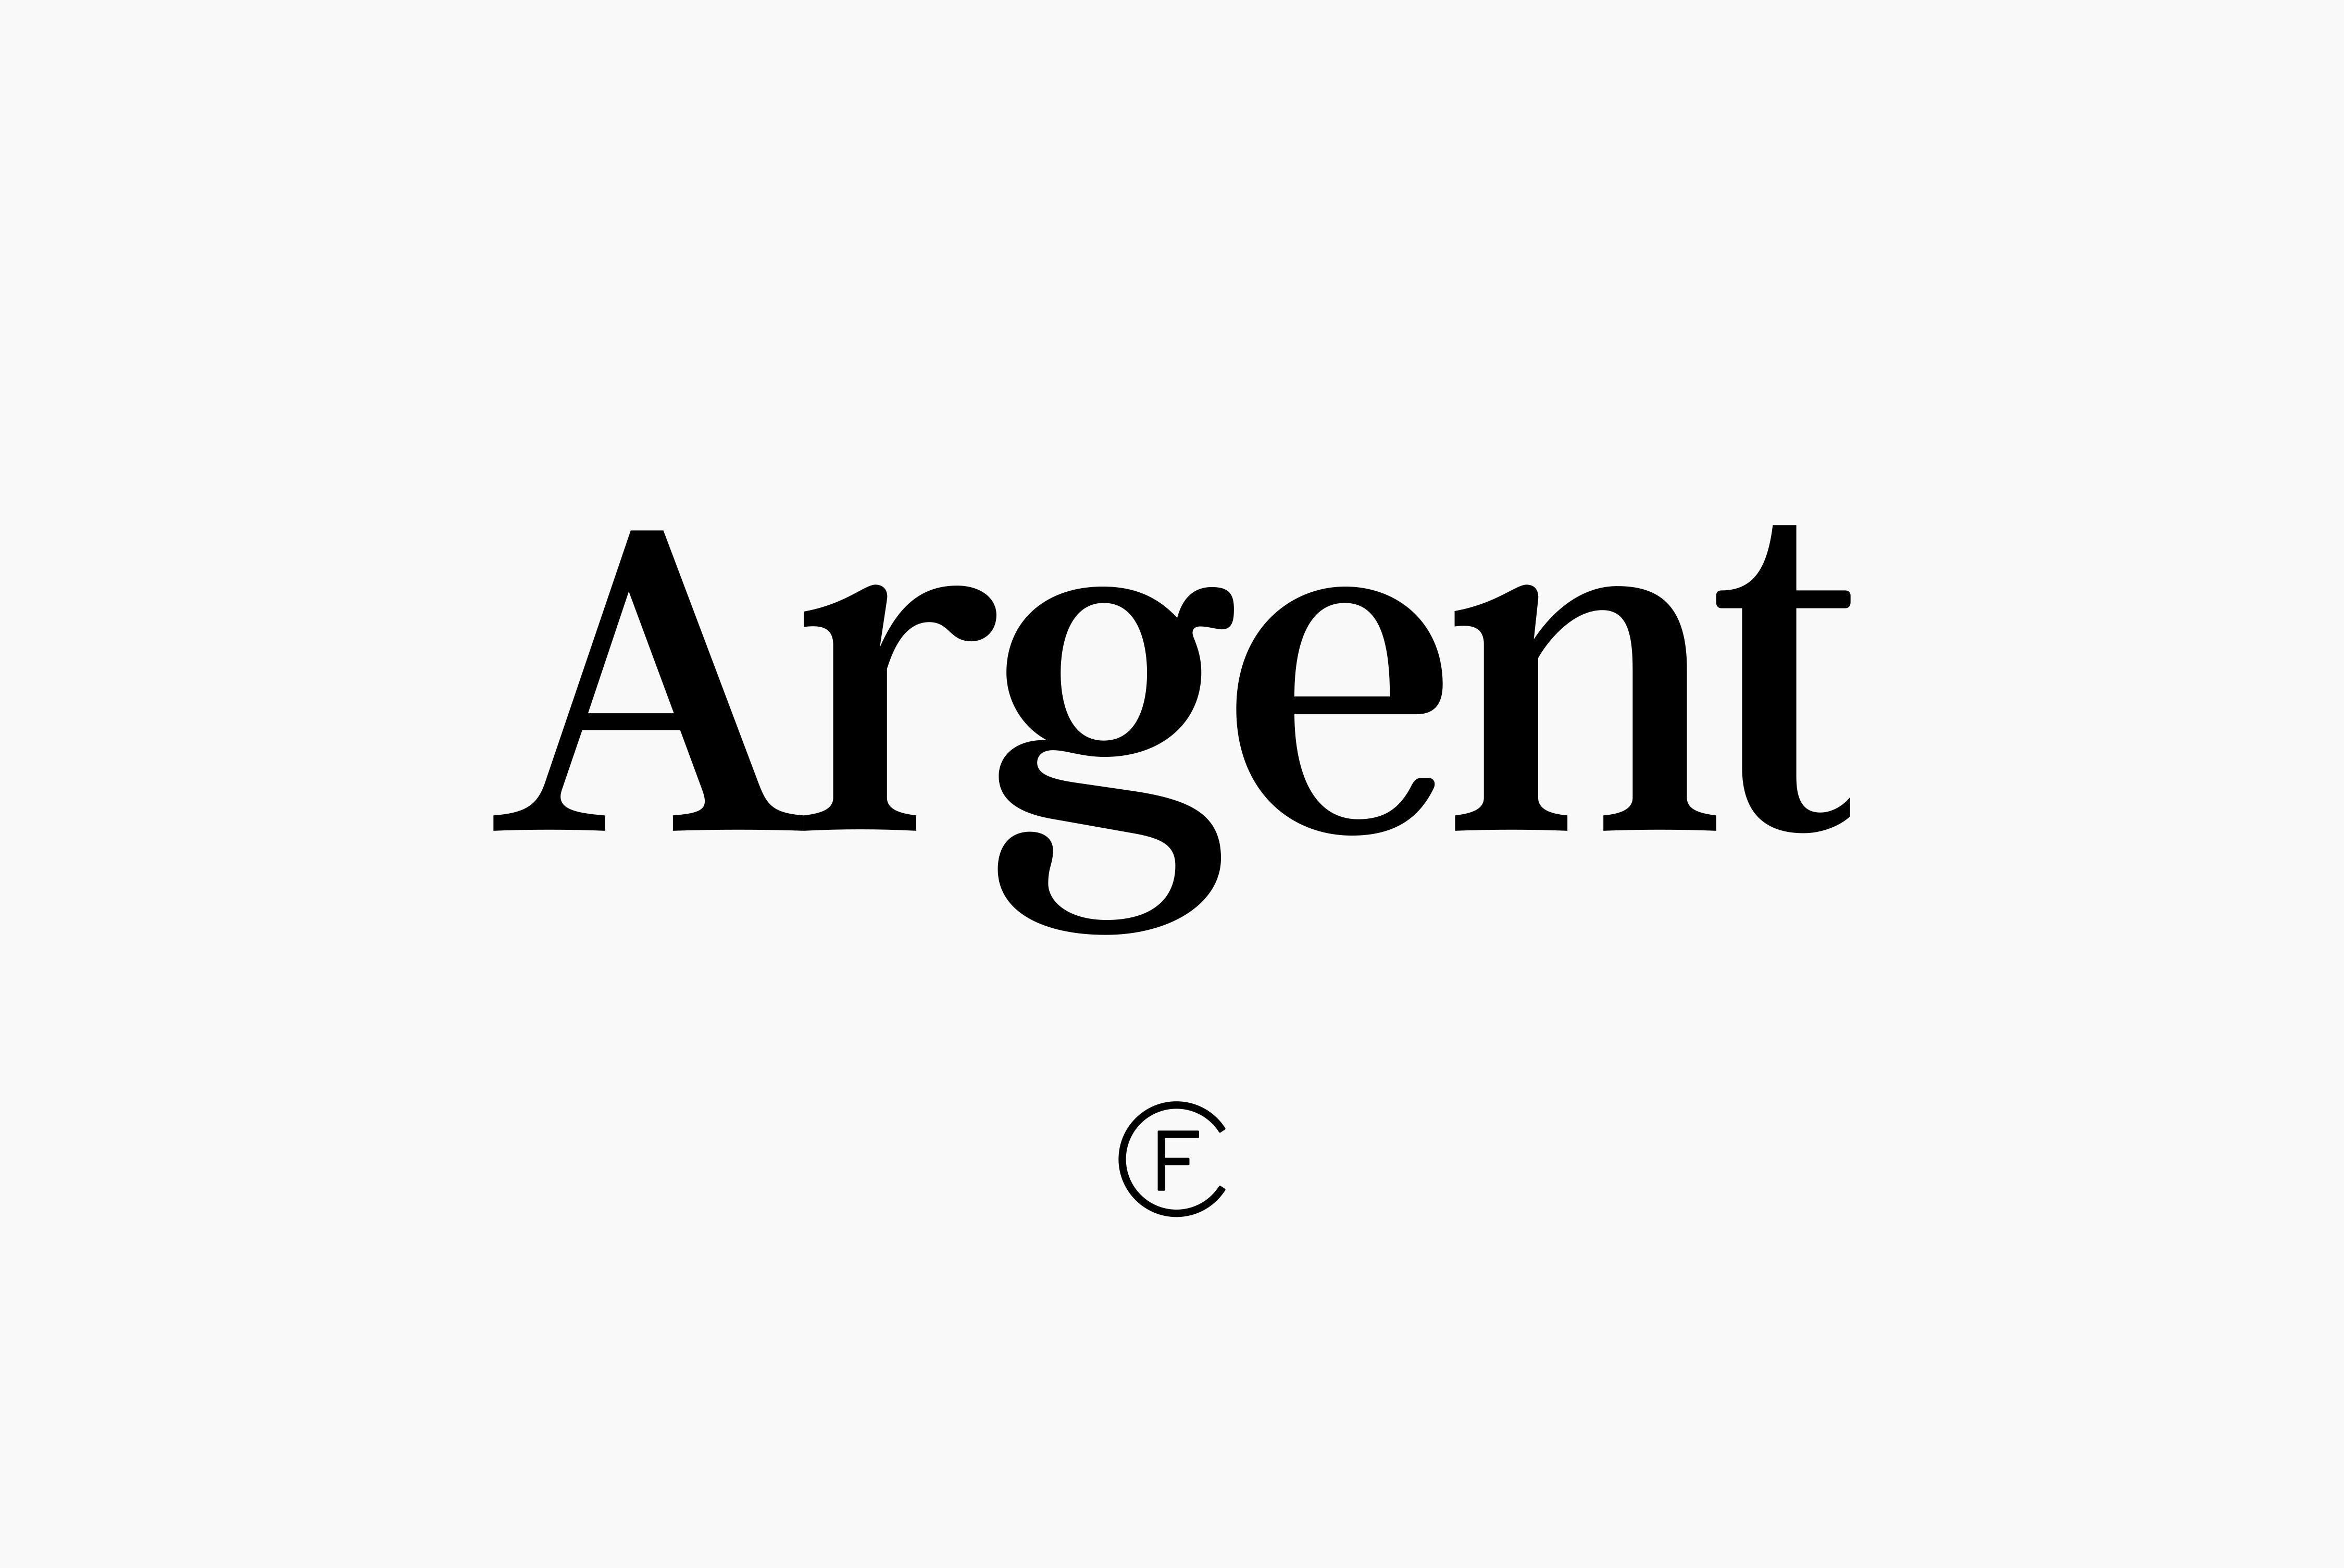 Argent CF Font / by Connary Fagen on Creative Market